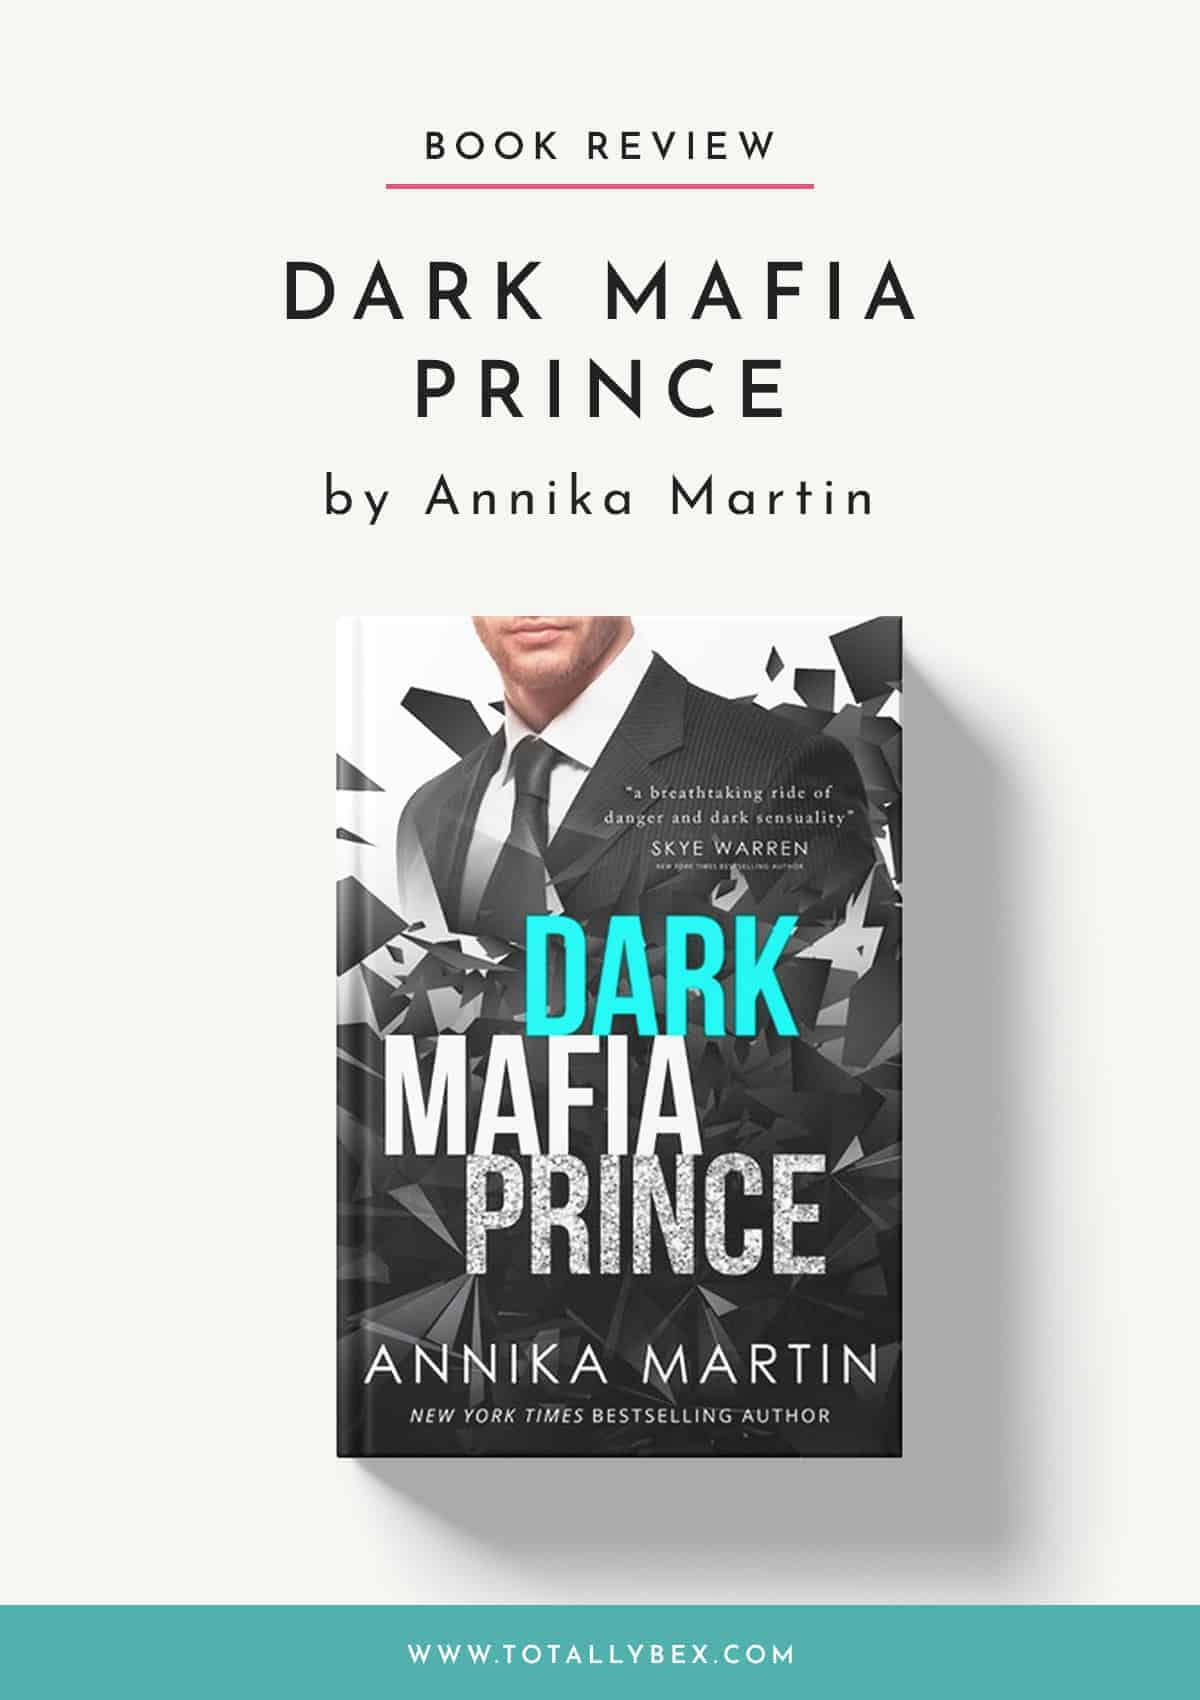 Dark Mafia Prince by Annika Martin-Book Review